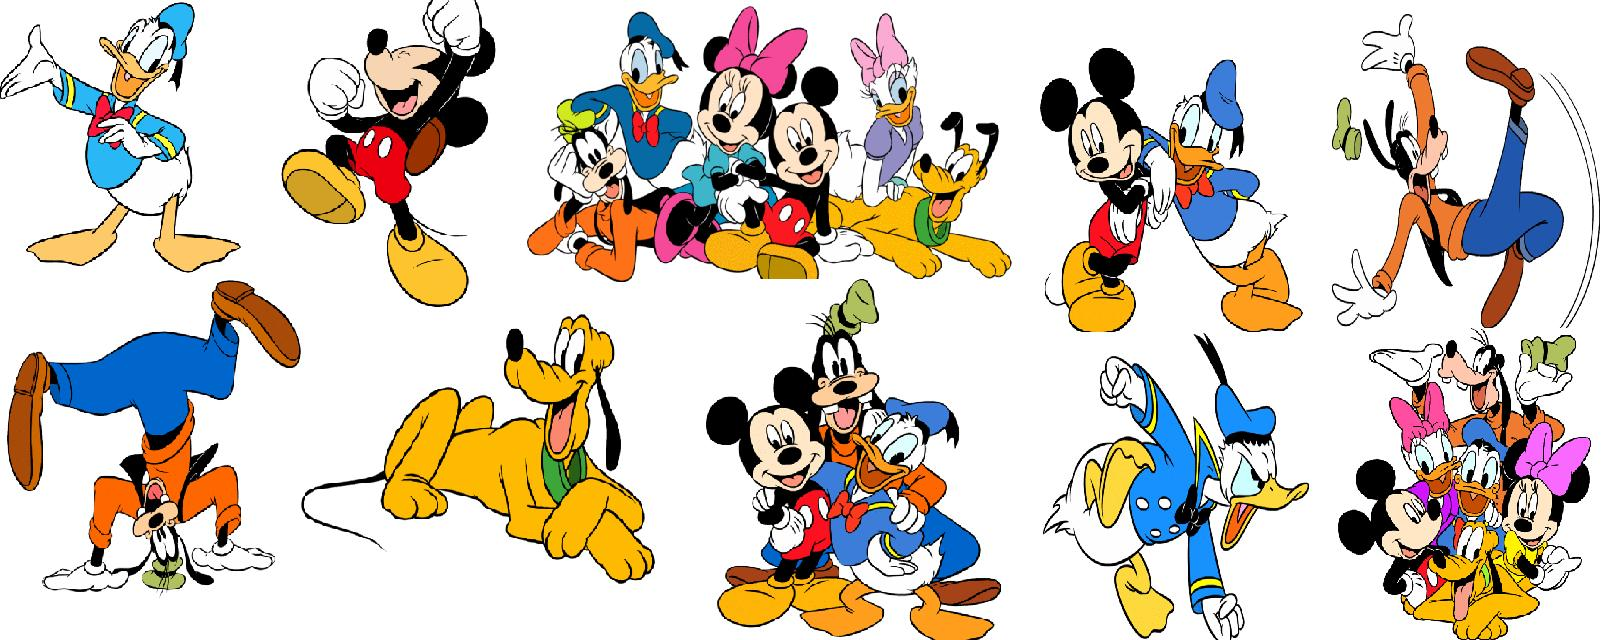 Main disney characters clipart clip library Walt disney characters clipart on my way to disney - ClipartFest clip library